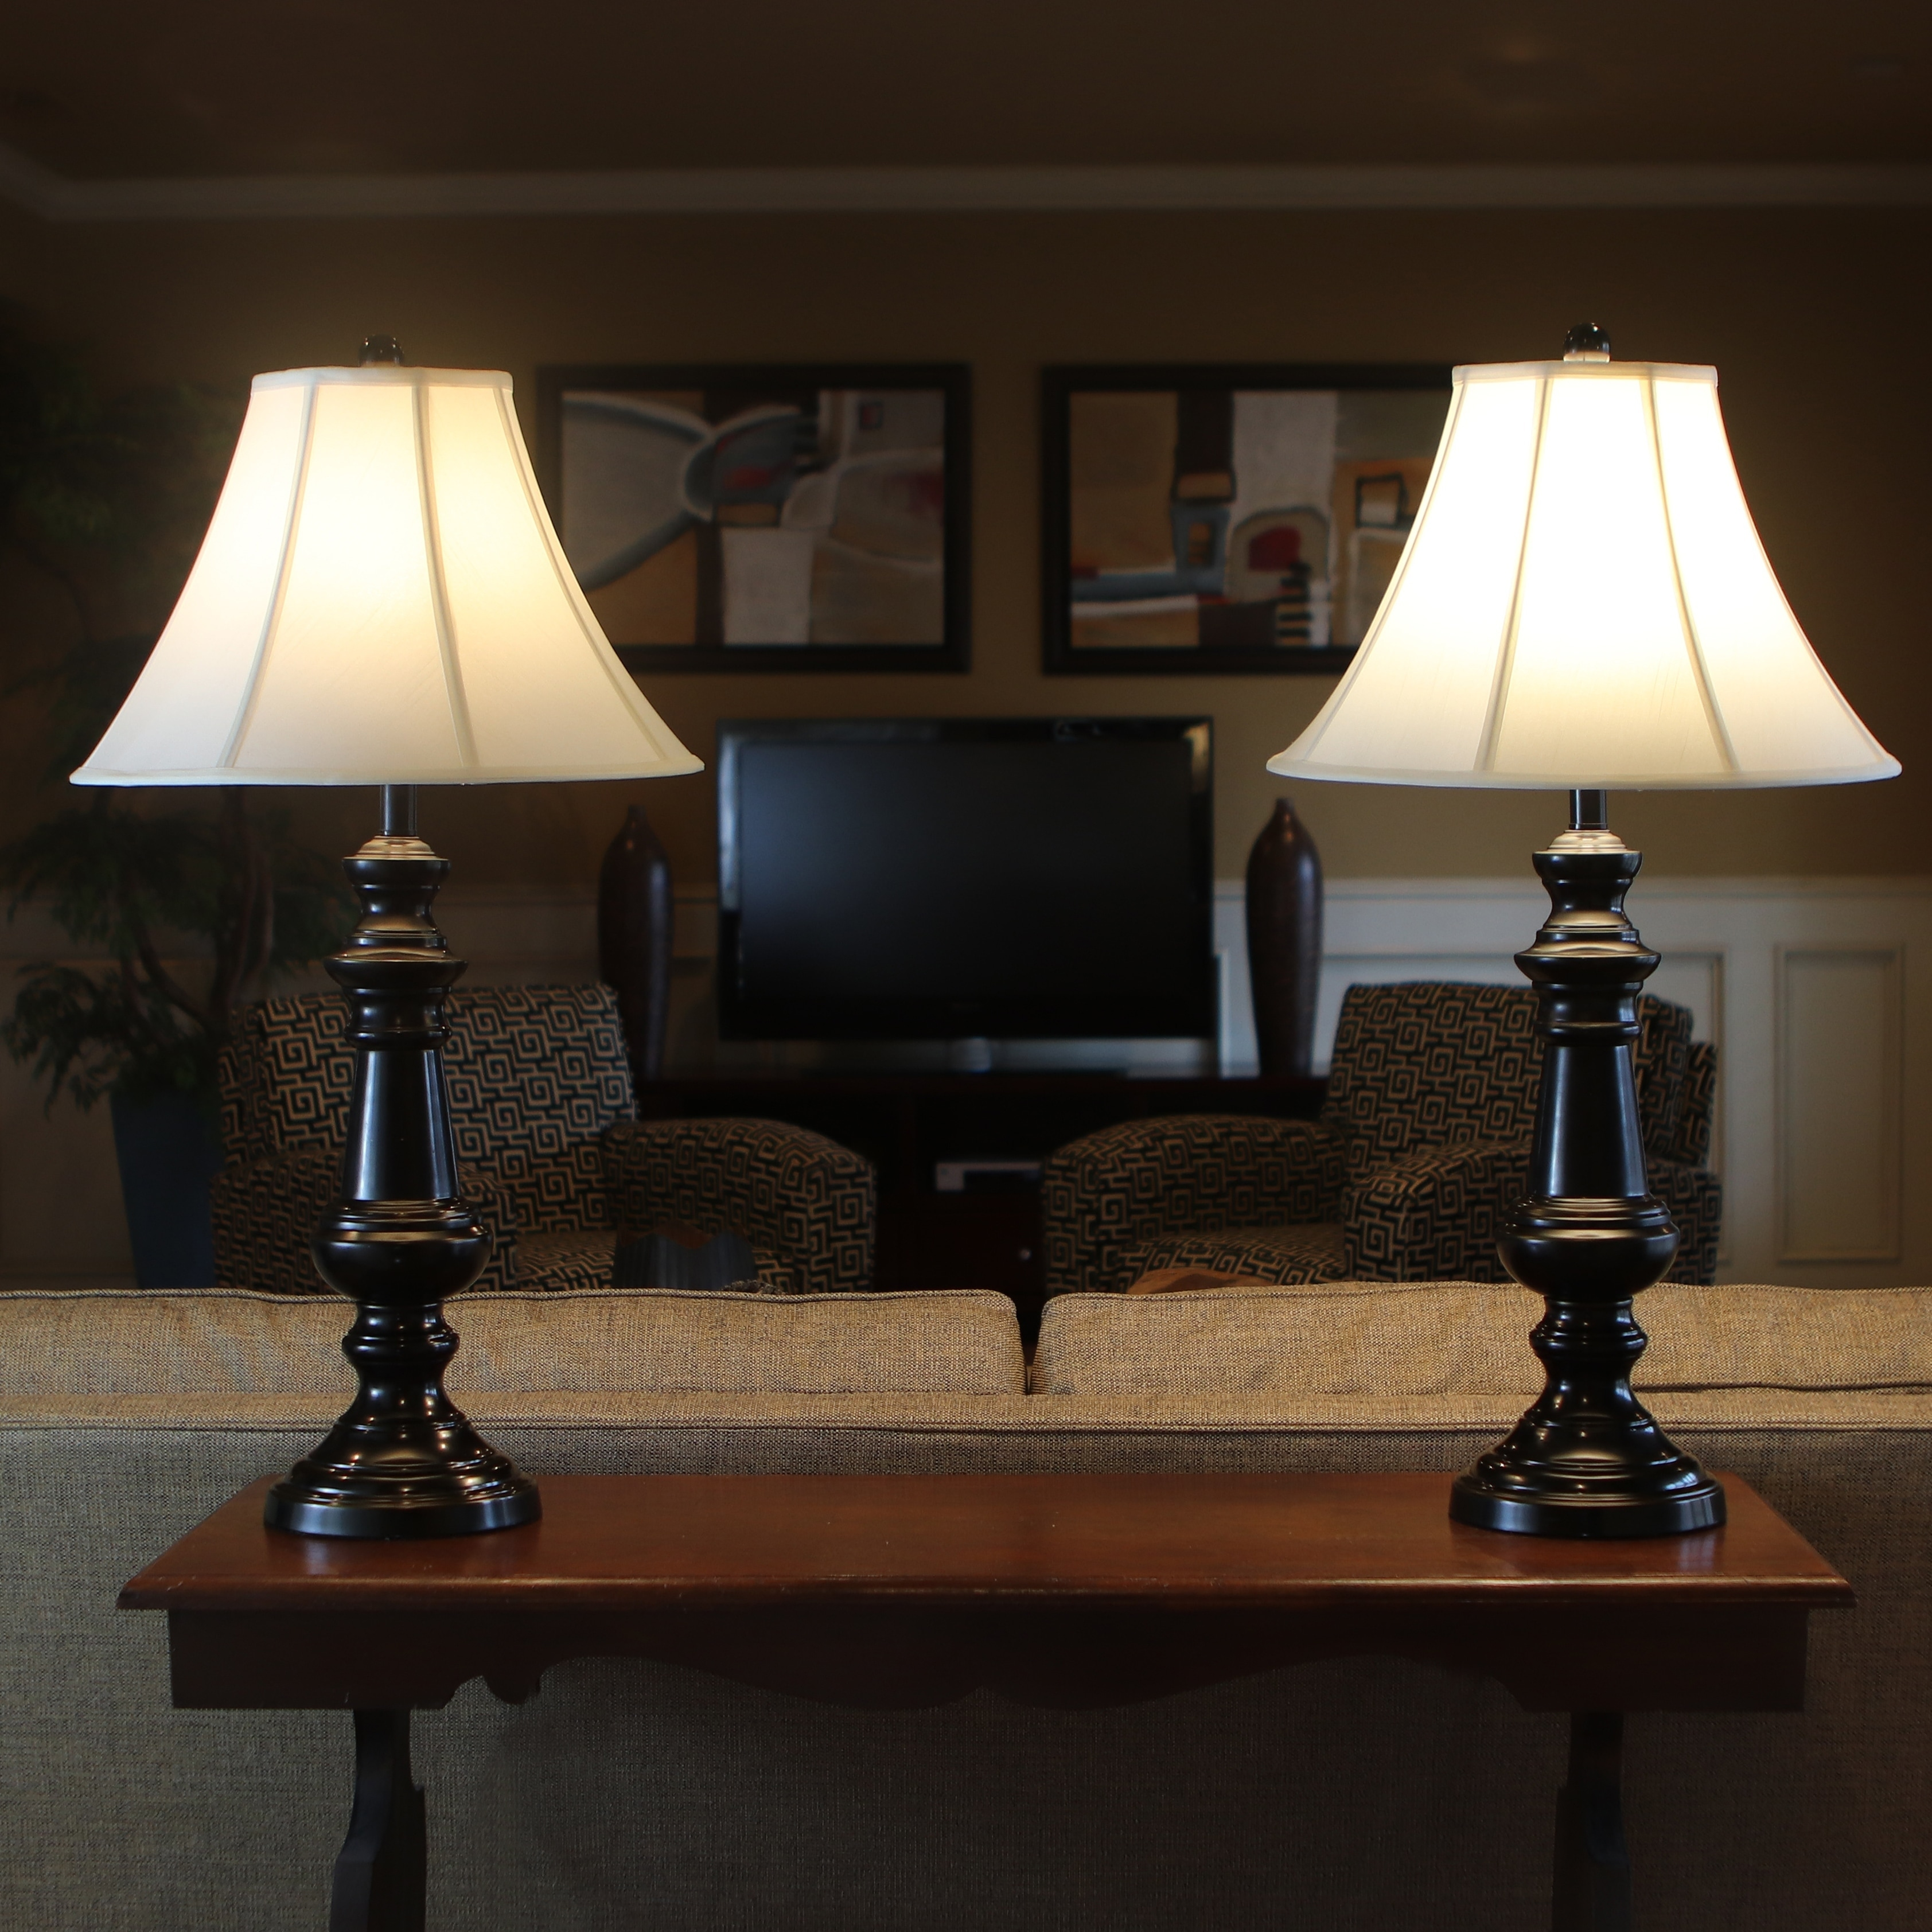 Bon Details About Decor Therapy Table Lamps Touch Control Bronze Finish Living  Room Decor 2 Piece